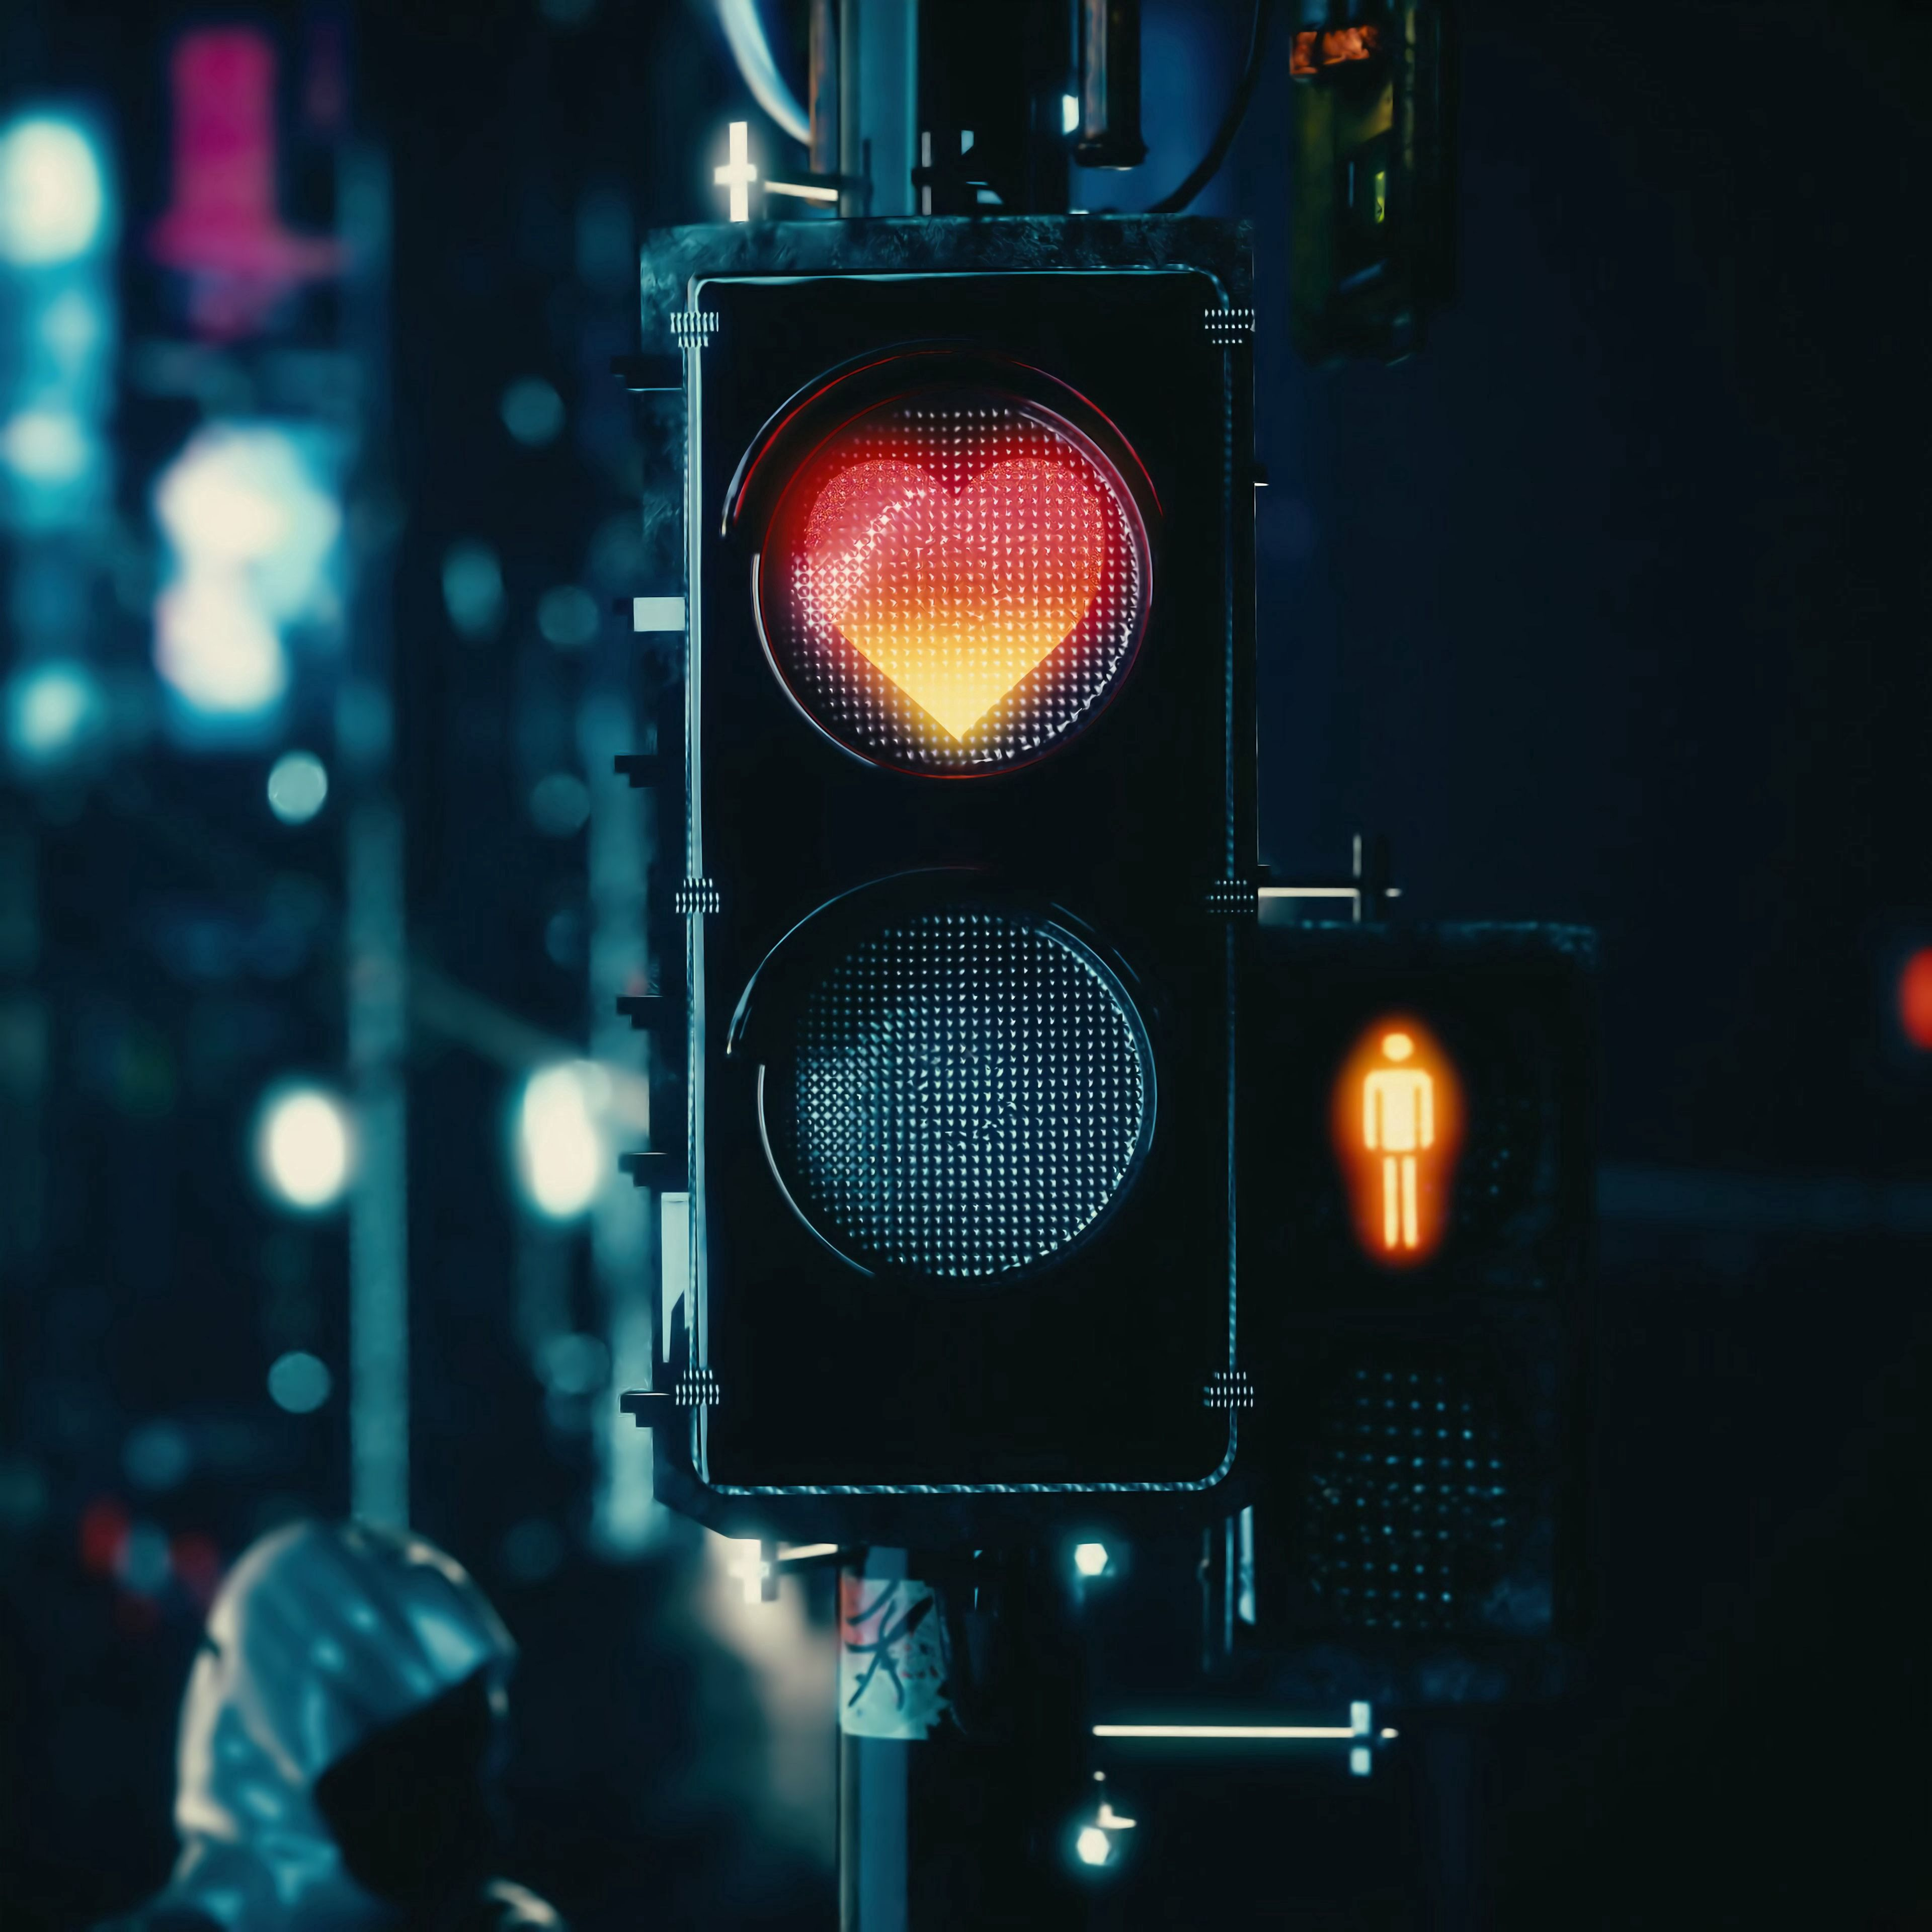 105860 download wallpaper Love, Heart, Traffic Light, Signal screensavers and pictures for free